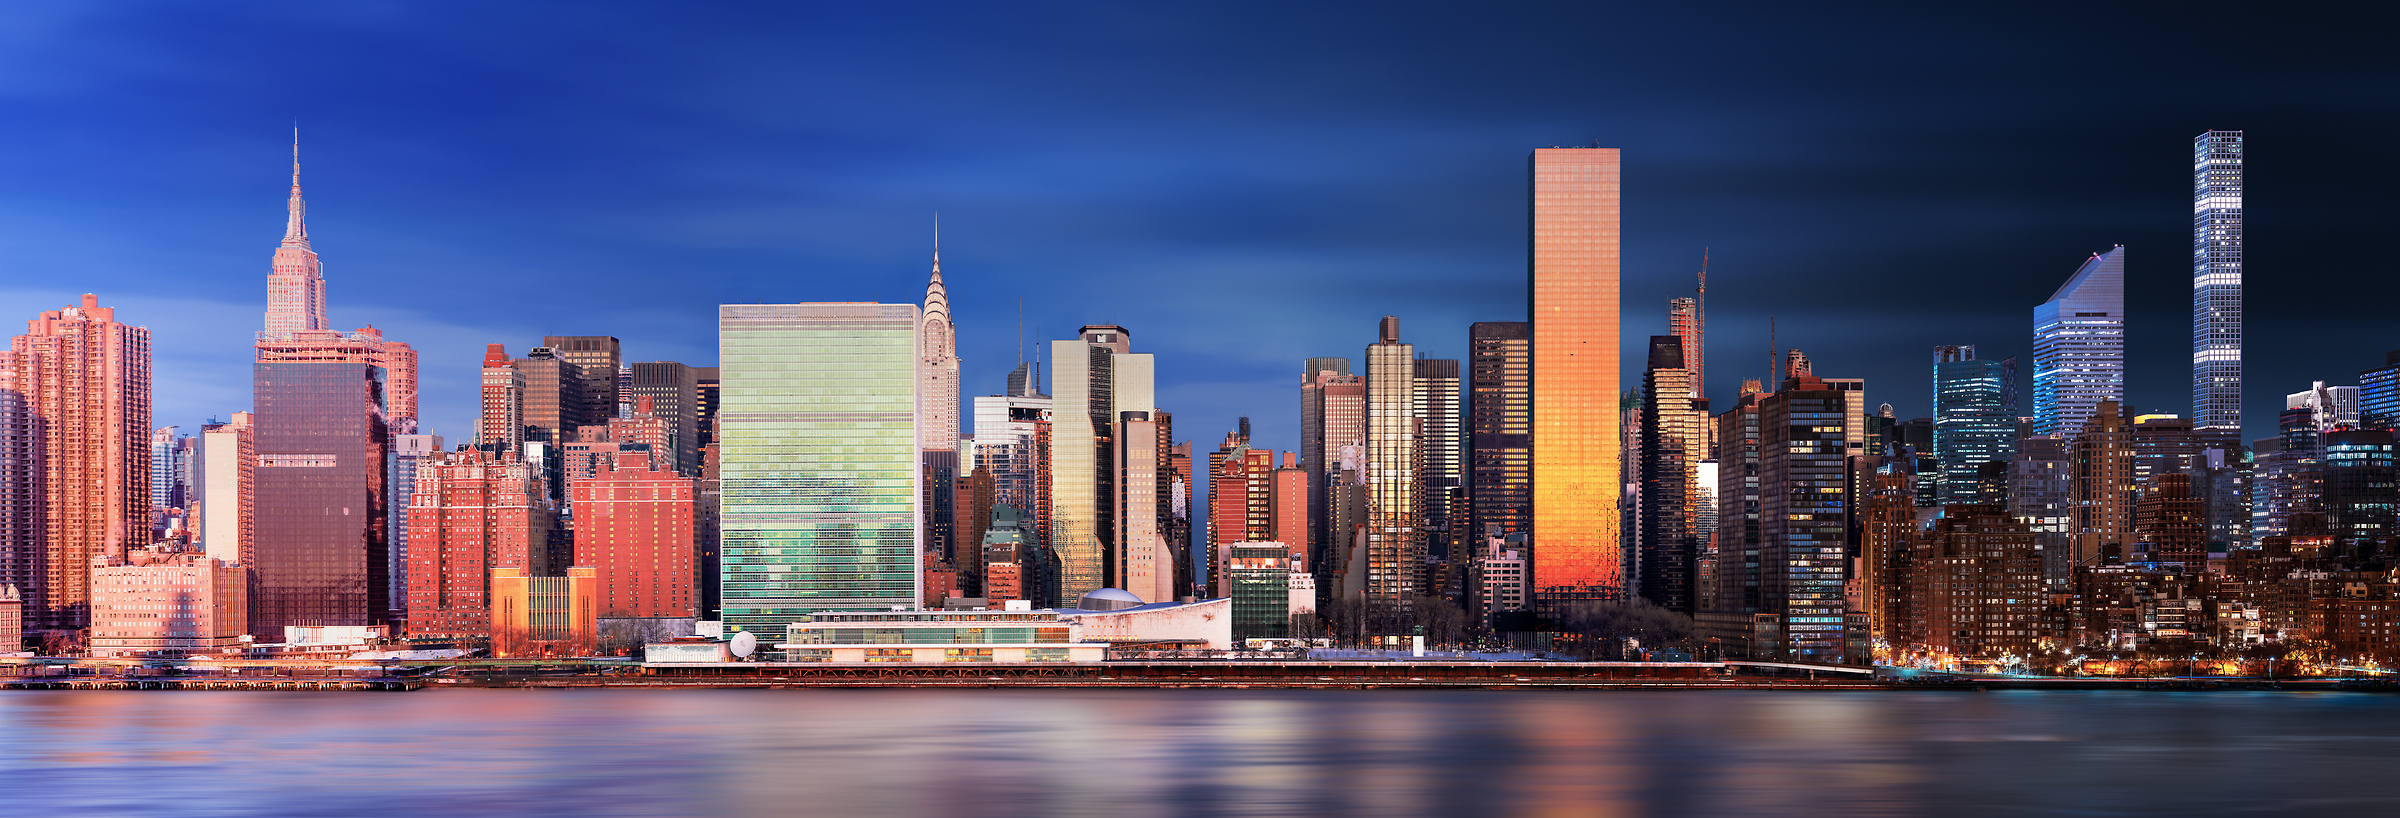 A very high resolution photograph of the Manhattan skyline; VAST photo created by Dan Piech